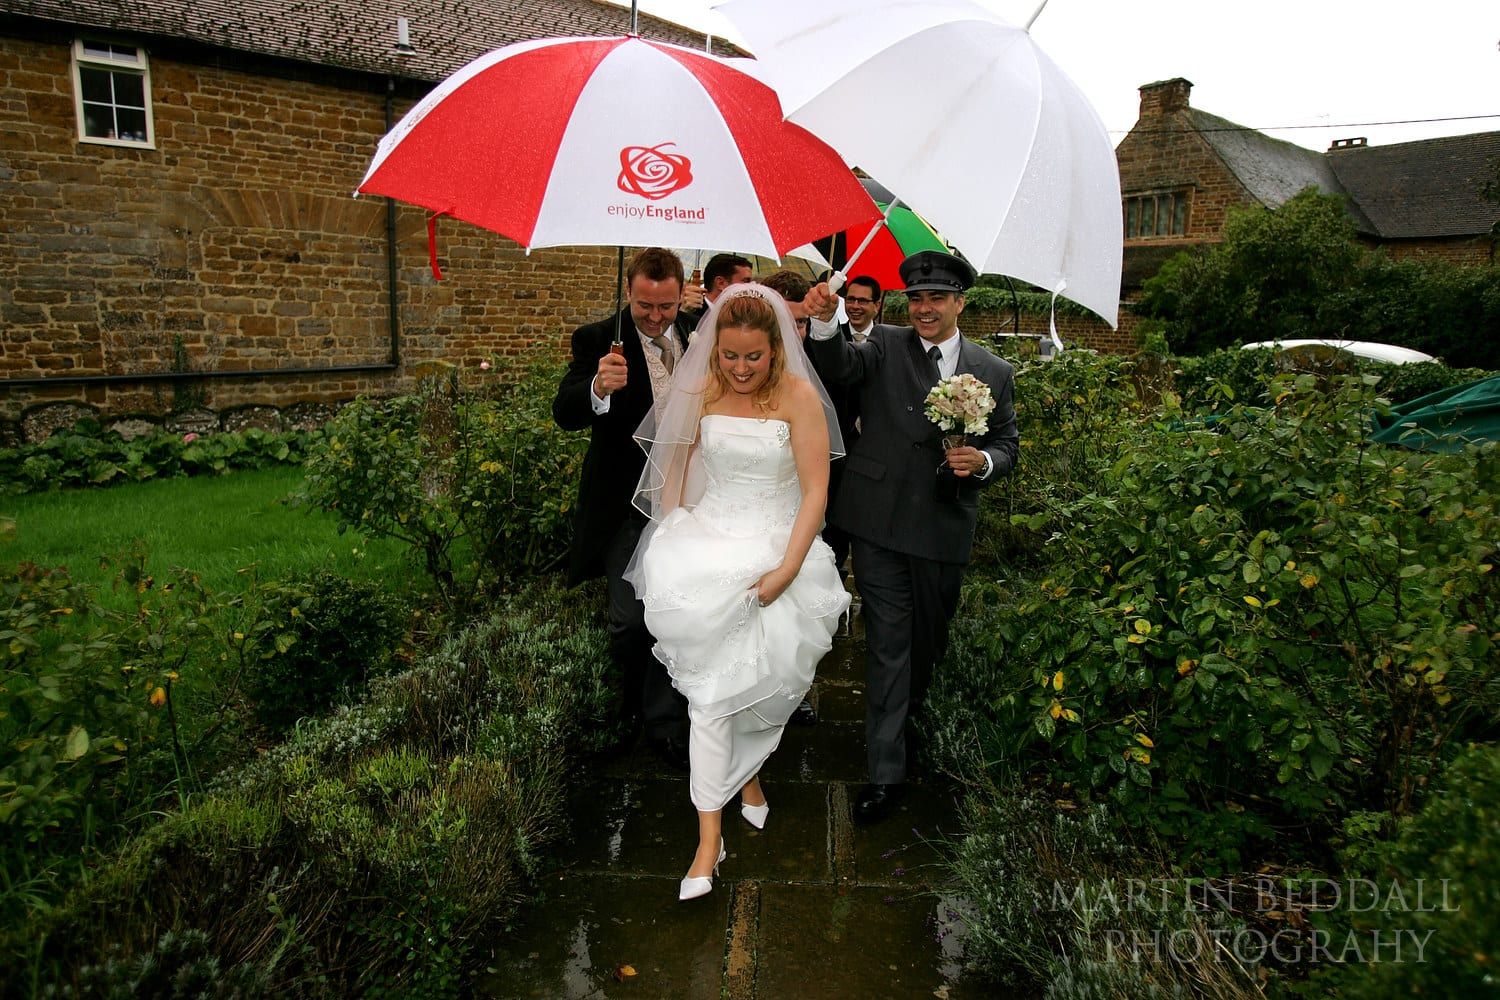 What if it rains at your wedding?